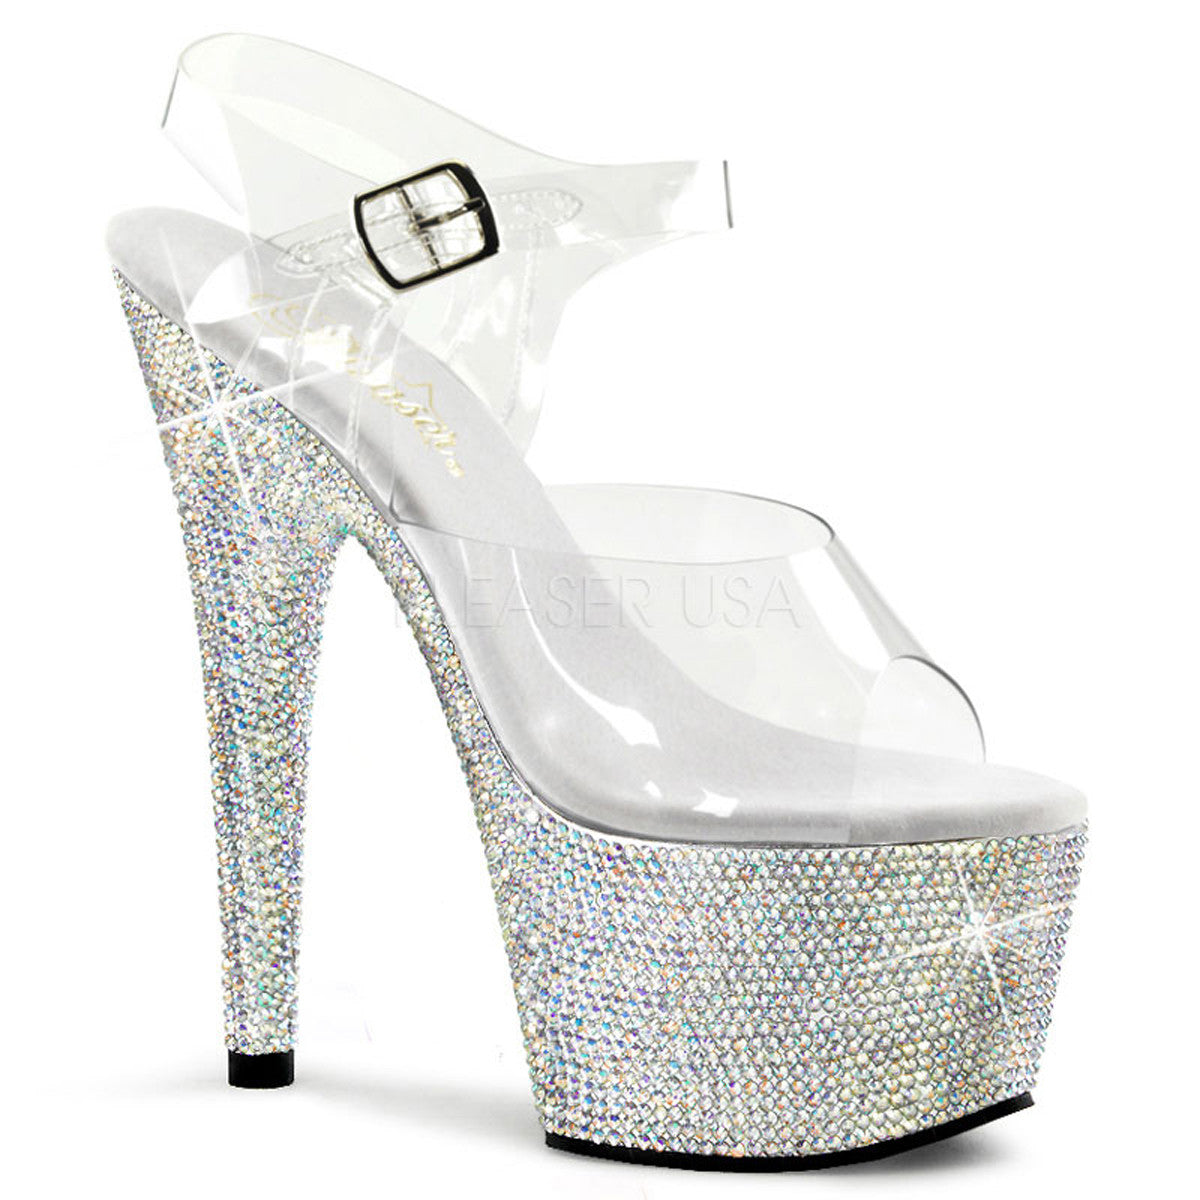 PLEASER BEJEWELED-708DM Clear-Silver Multi Rhinestone Ankle Strap Sandals - Shoecup.com - 1